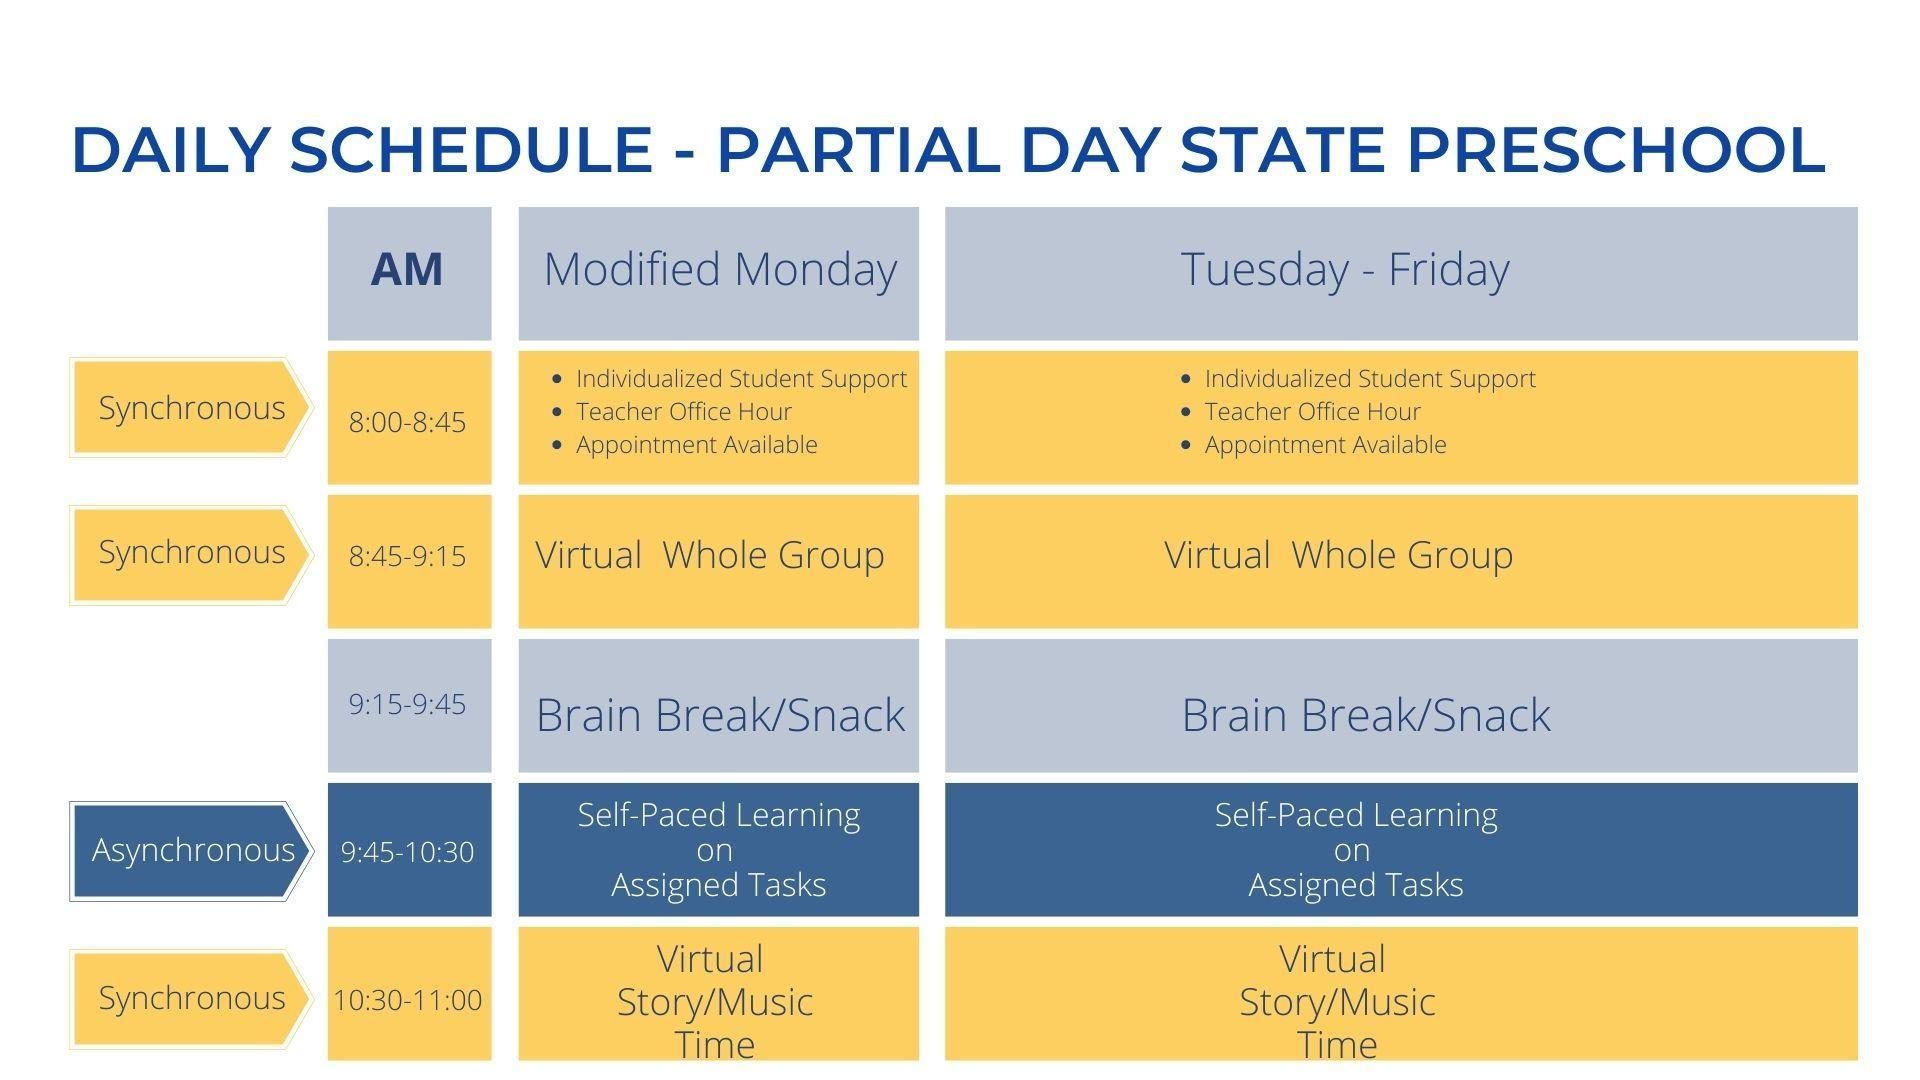 AM Partial Day State Preschool